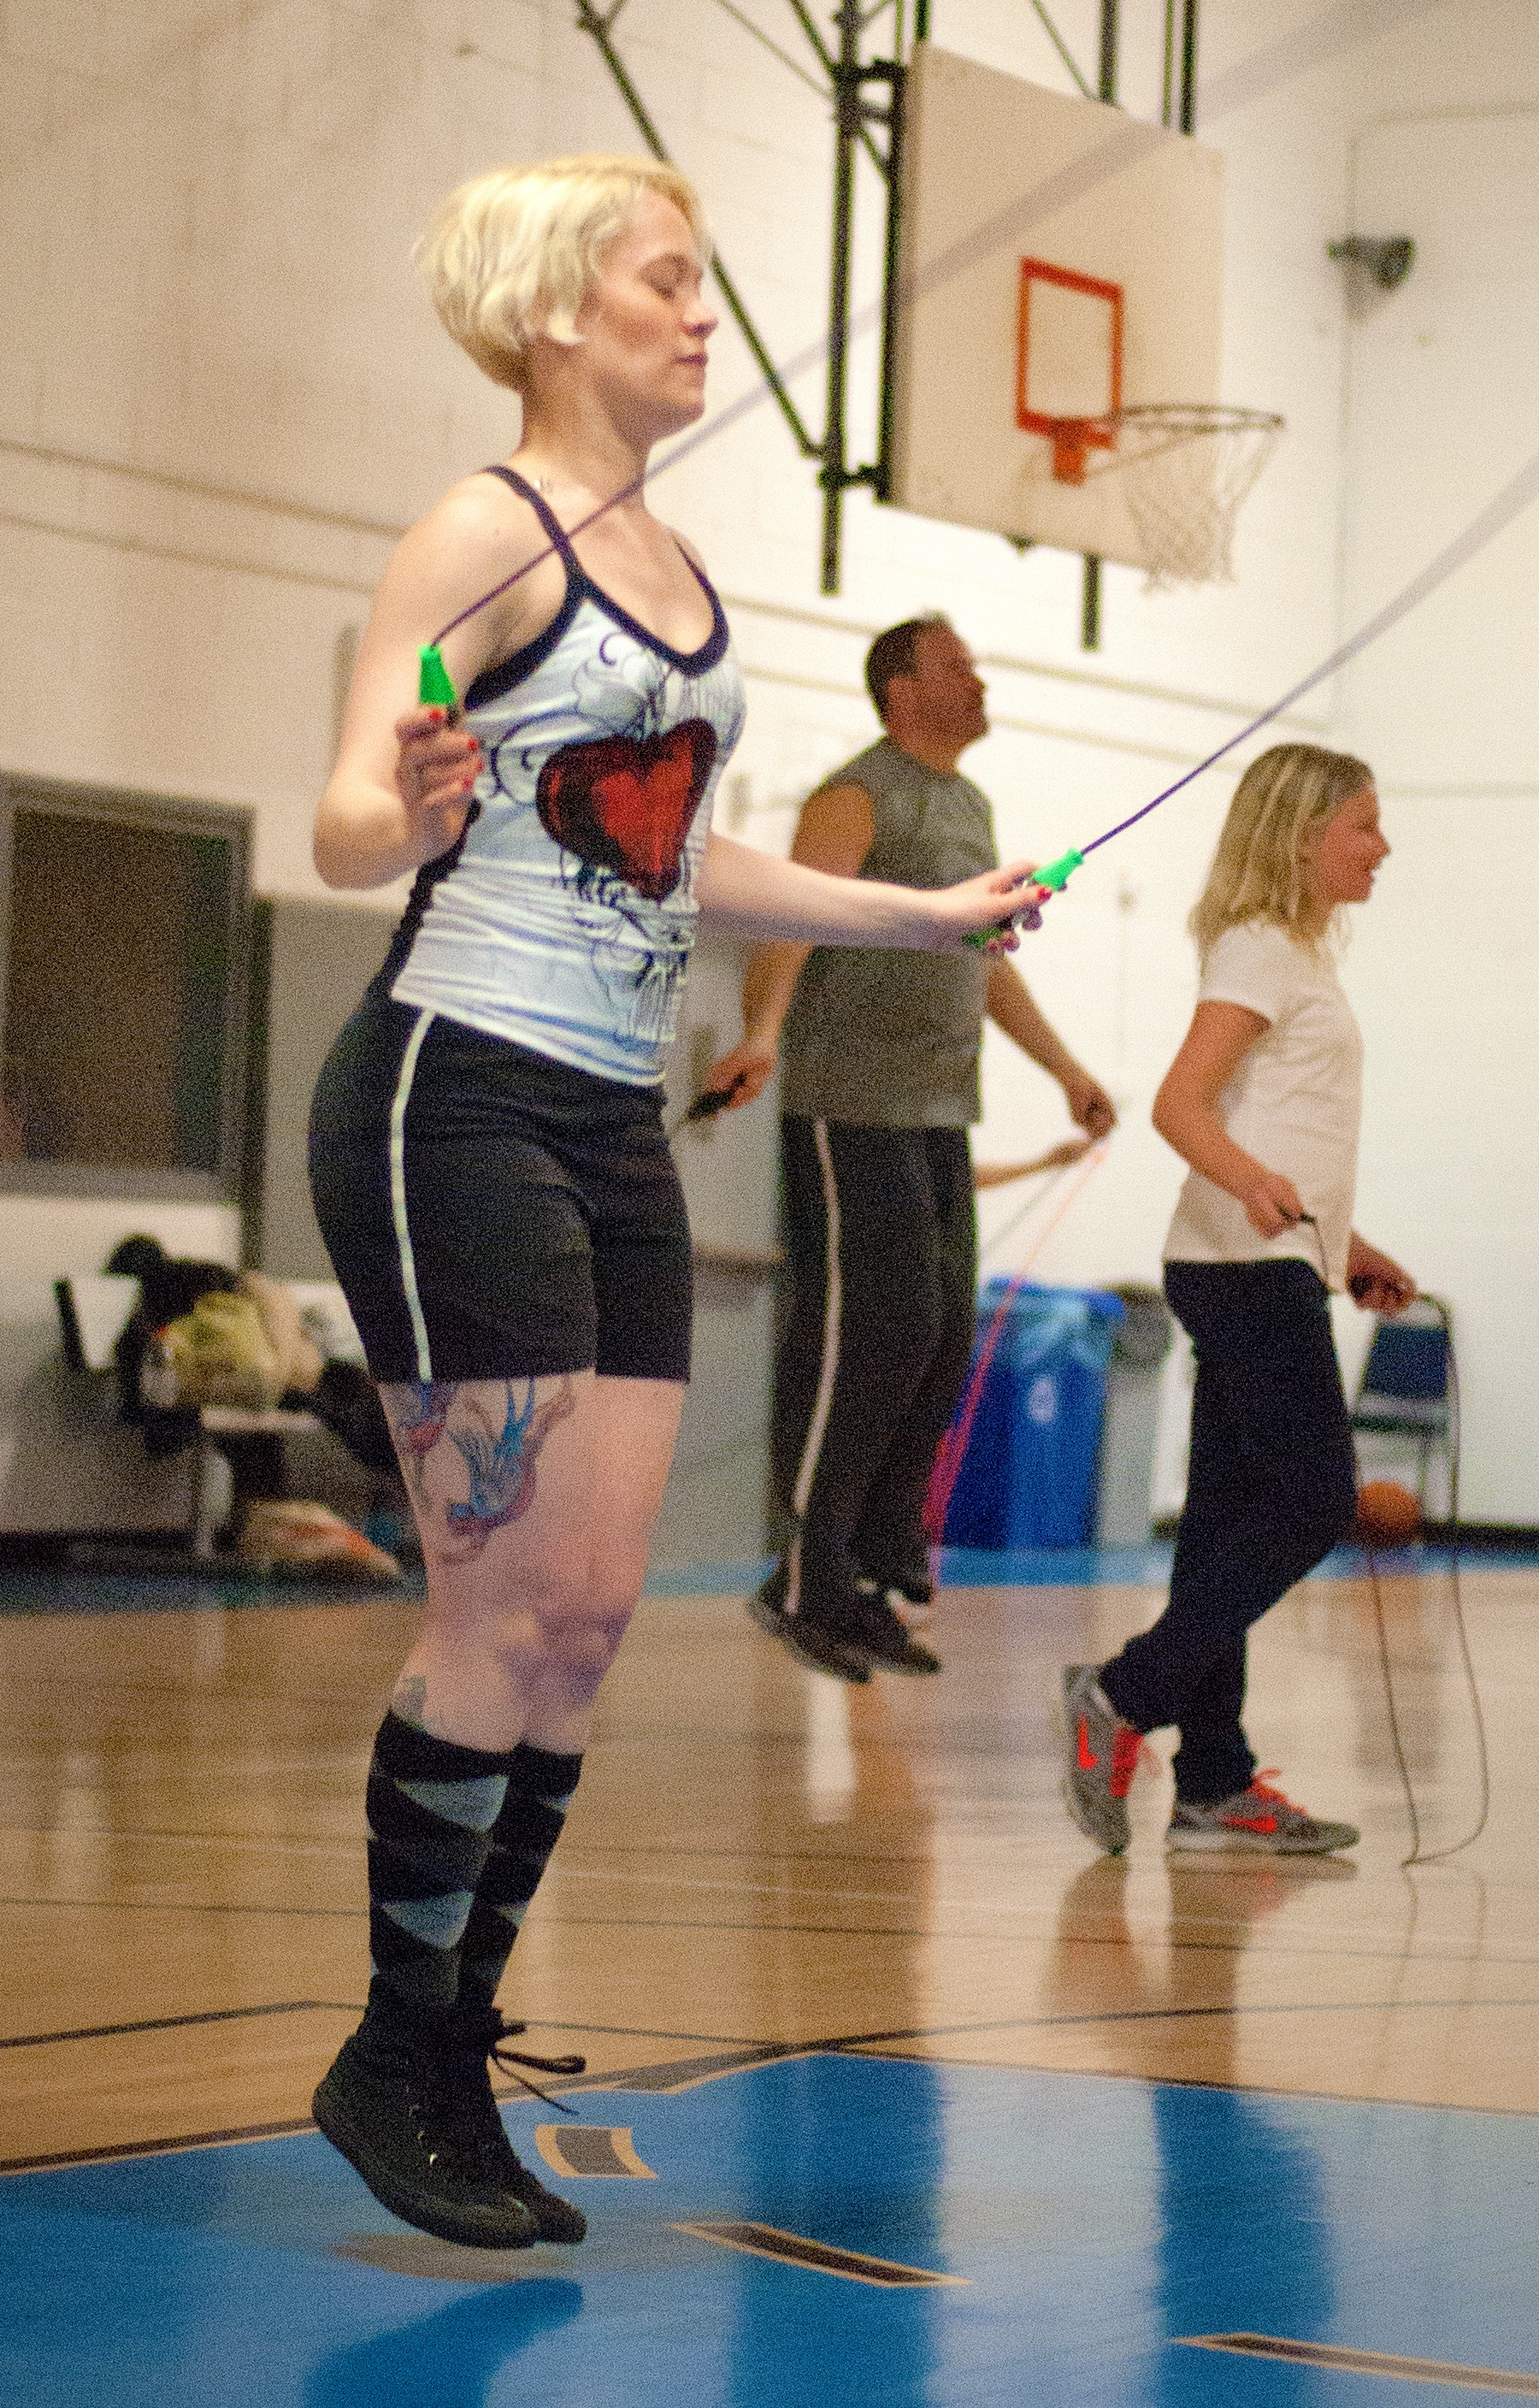 People at a Punk Rope class.